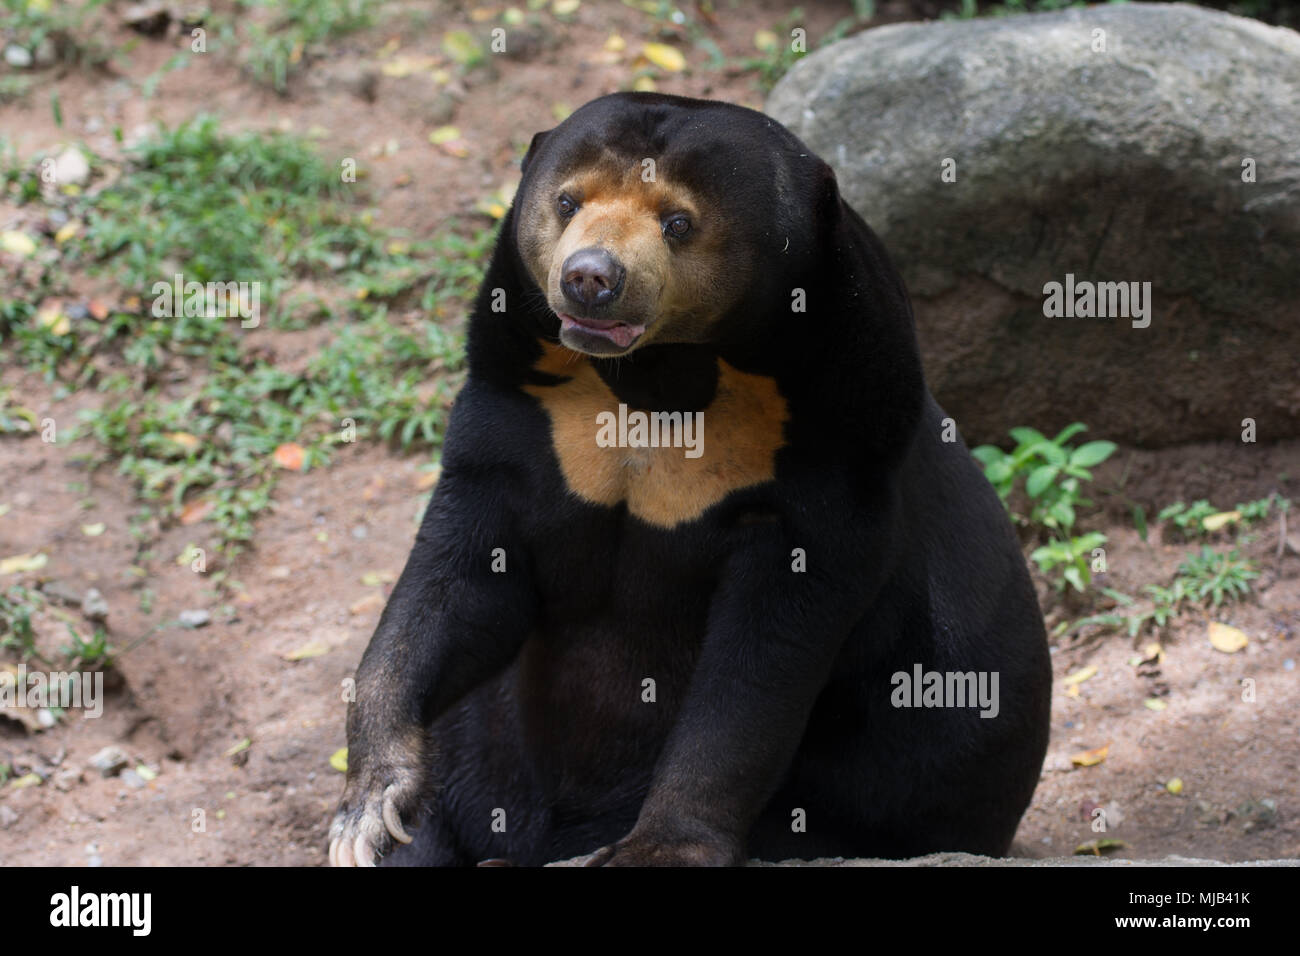 An asia black bear - Stock Image